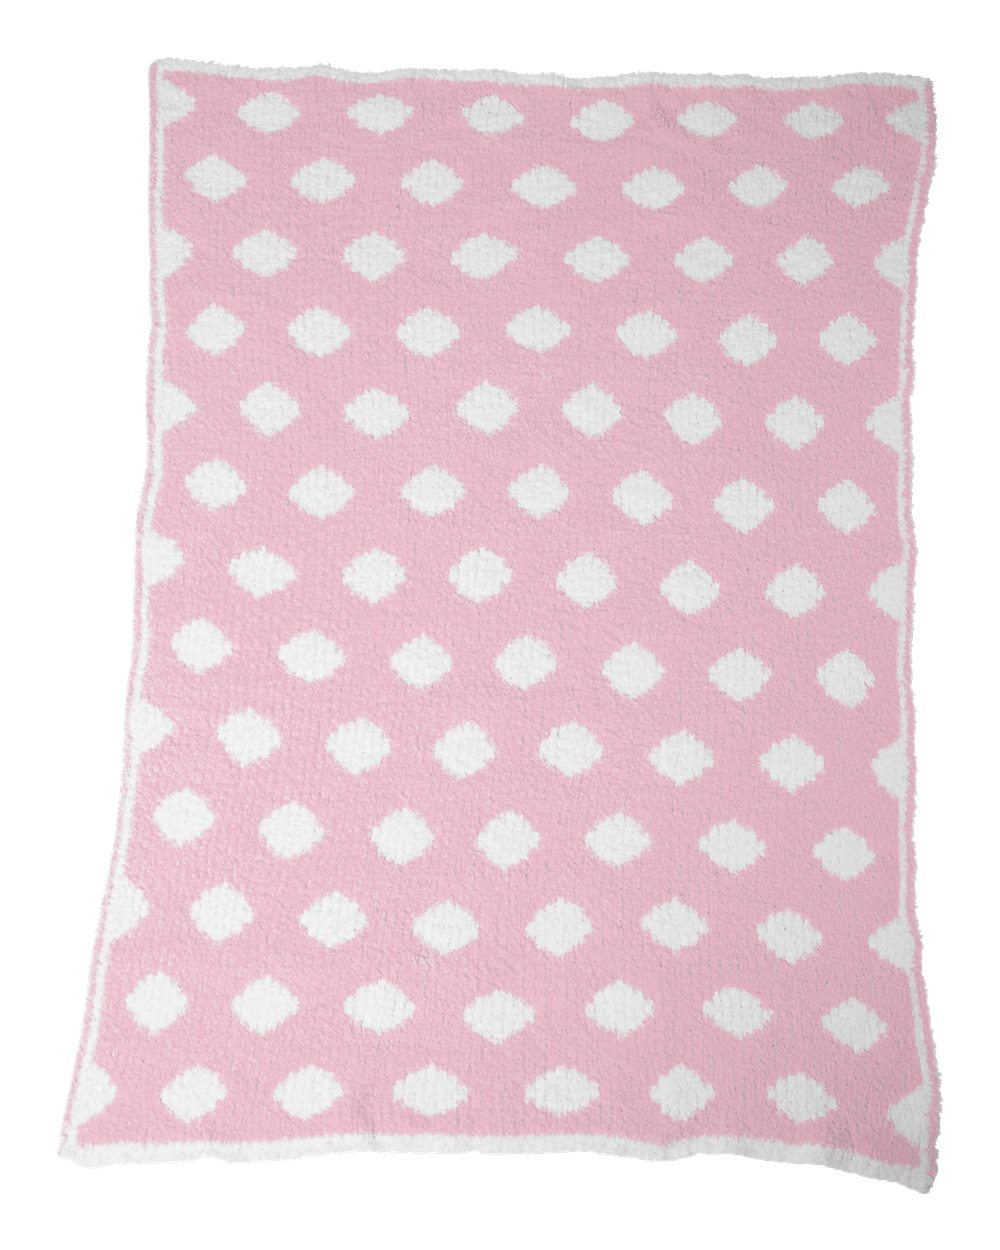 Chunky Chenille Polka Dot Baby Blanket - Kiss Pink